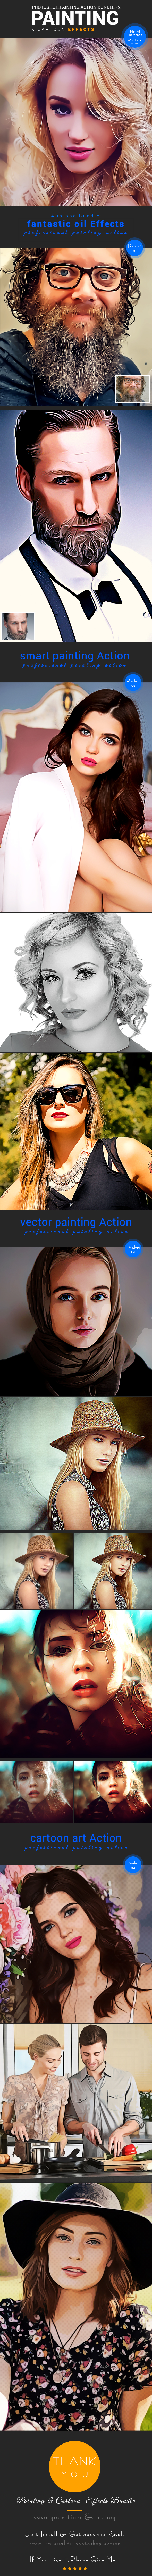 Painting & Cartoon Action Bundle - Photo Effects Actions